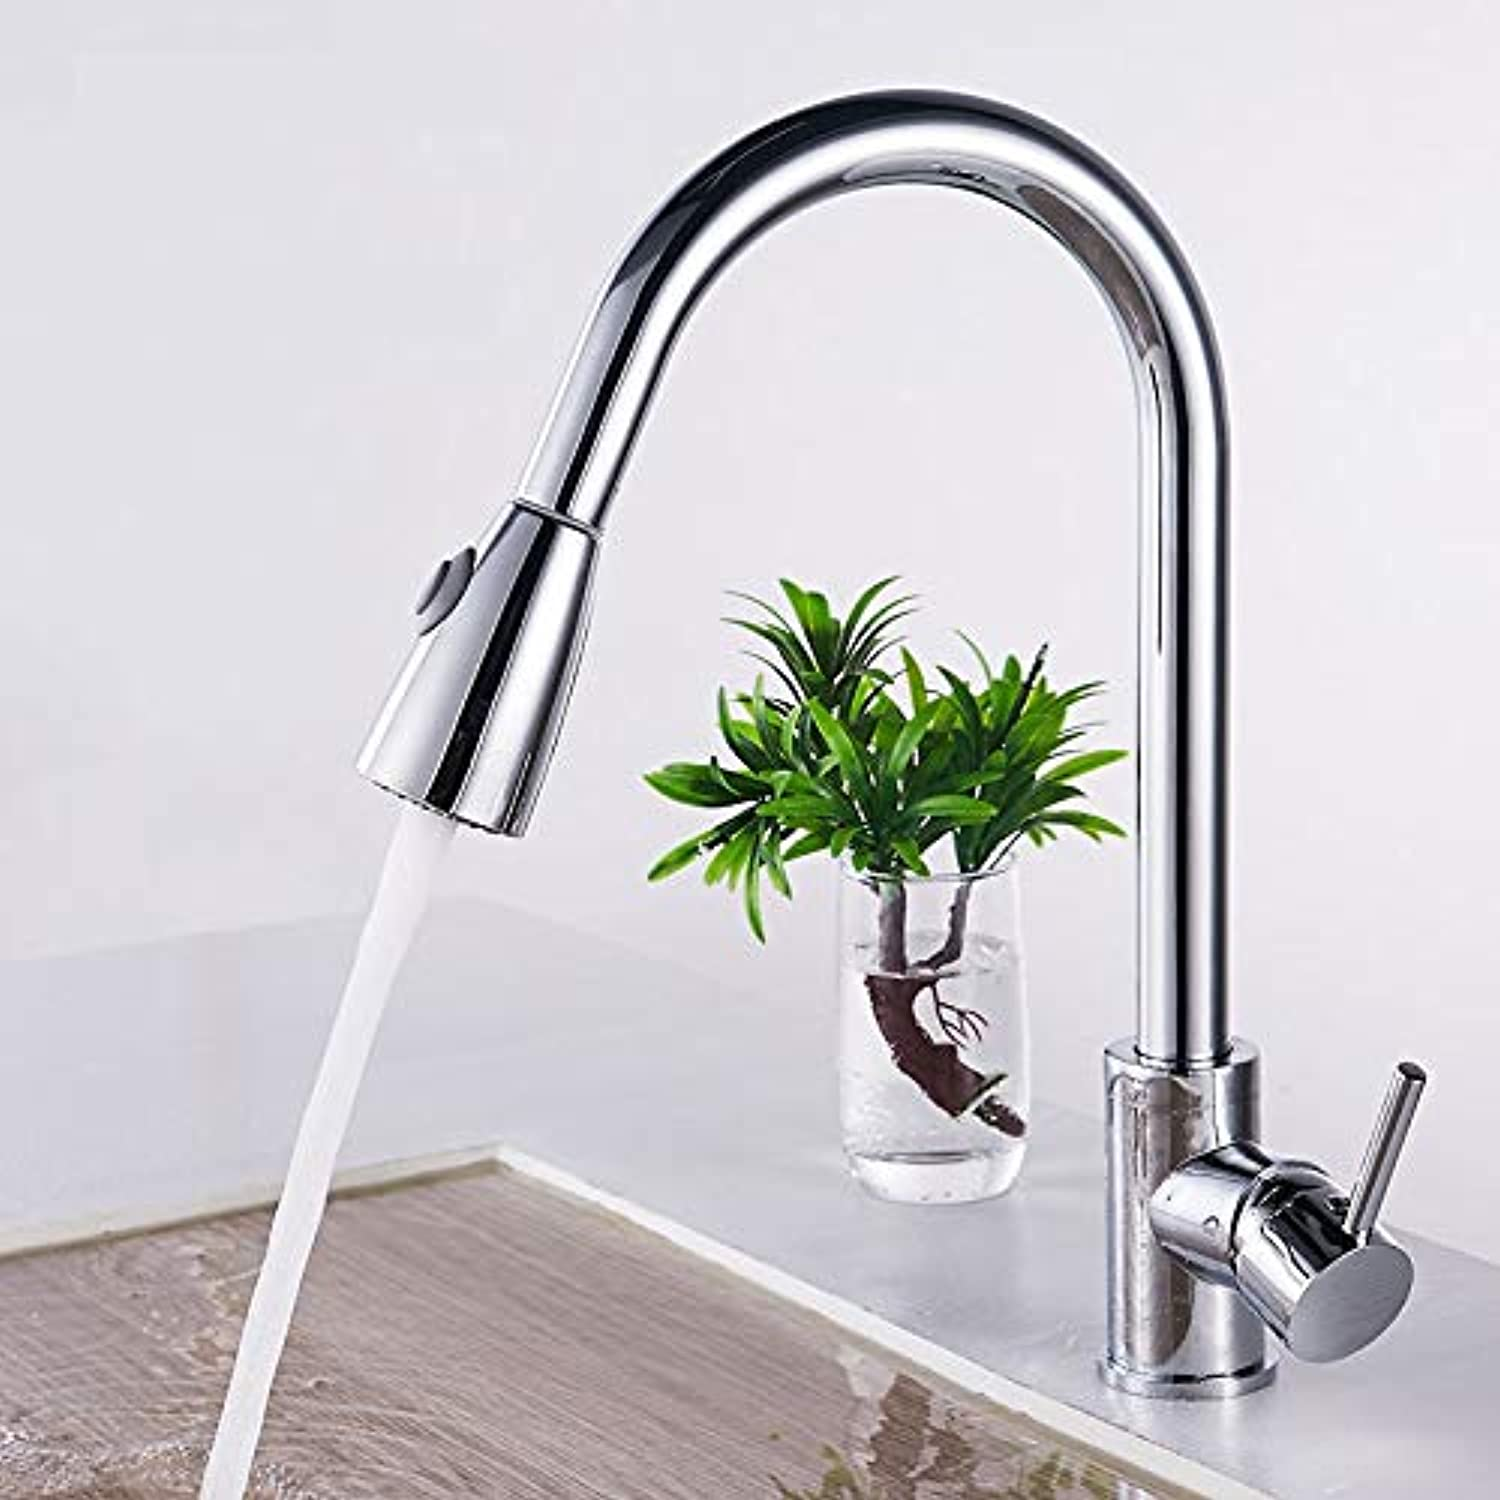 Kitchen Pull Faucet Can redate Hot and Cold Sink Sink Universal Household Stainless Steel Washbasin